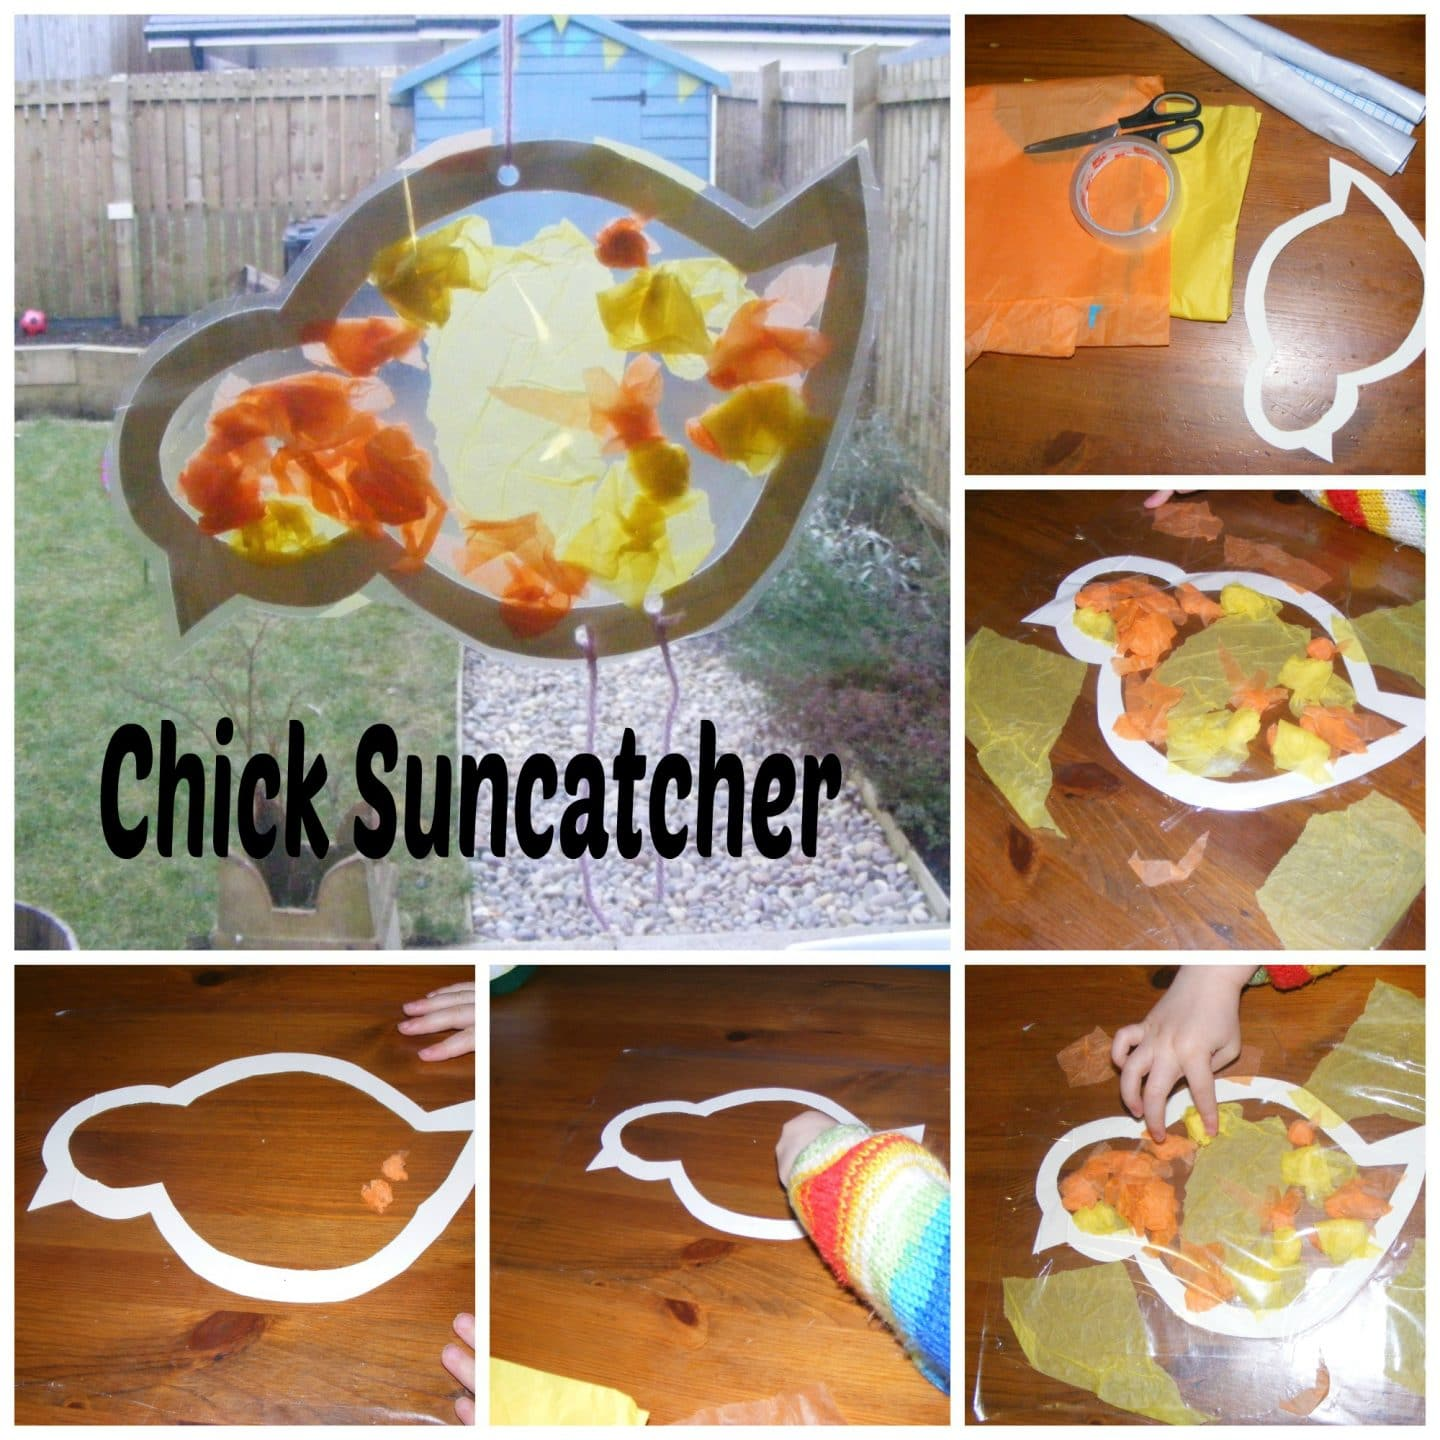 Easter Chick Suncatcher